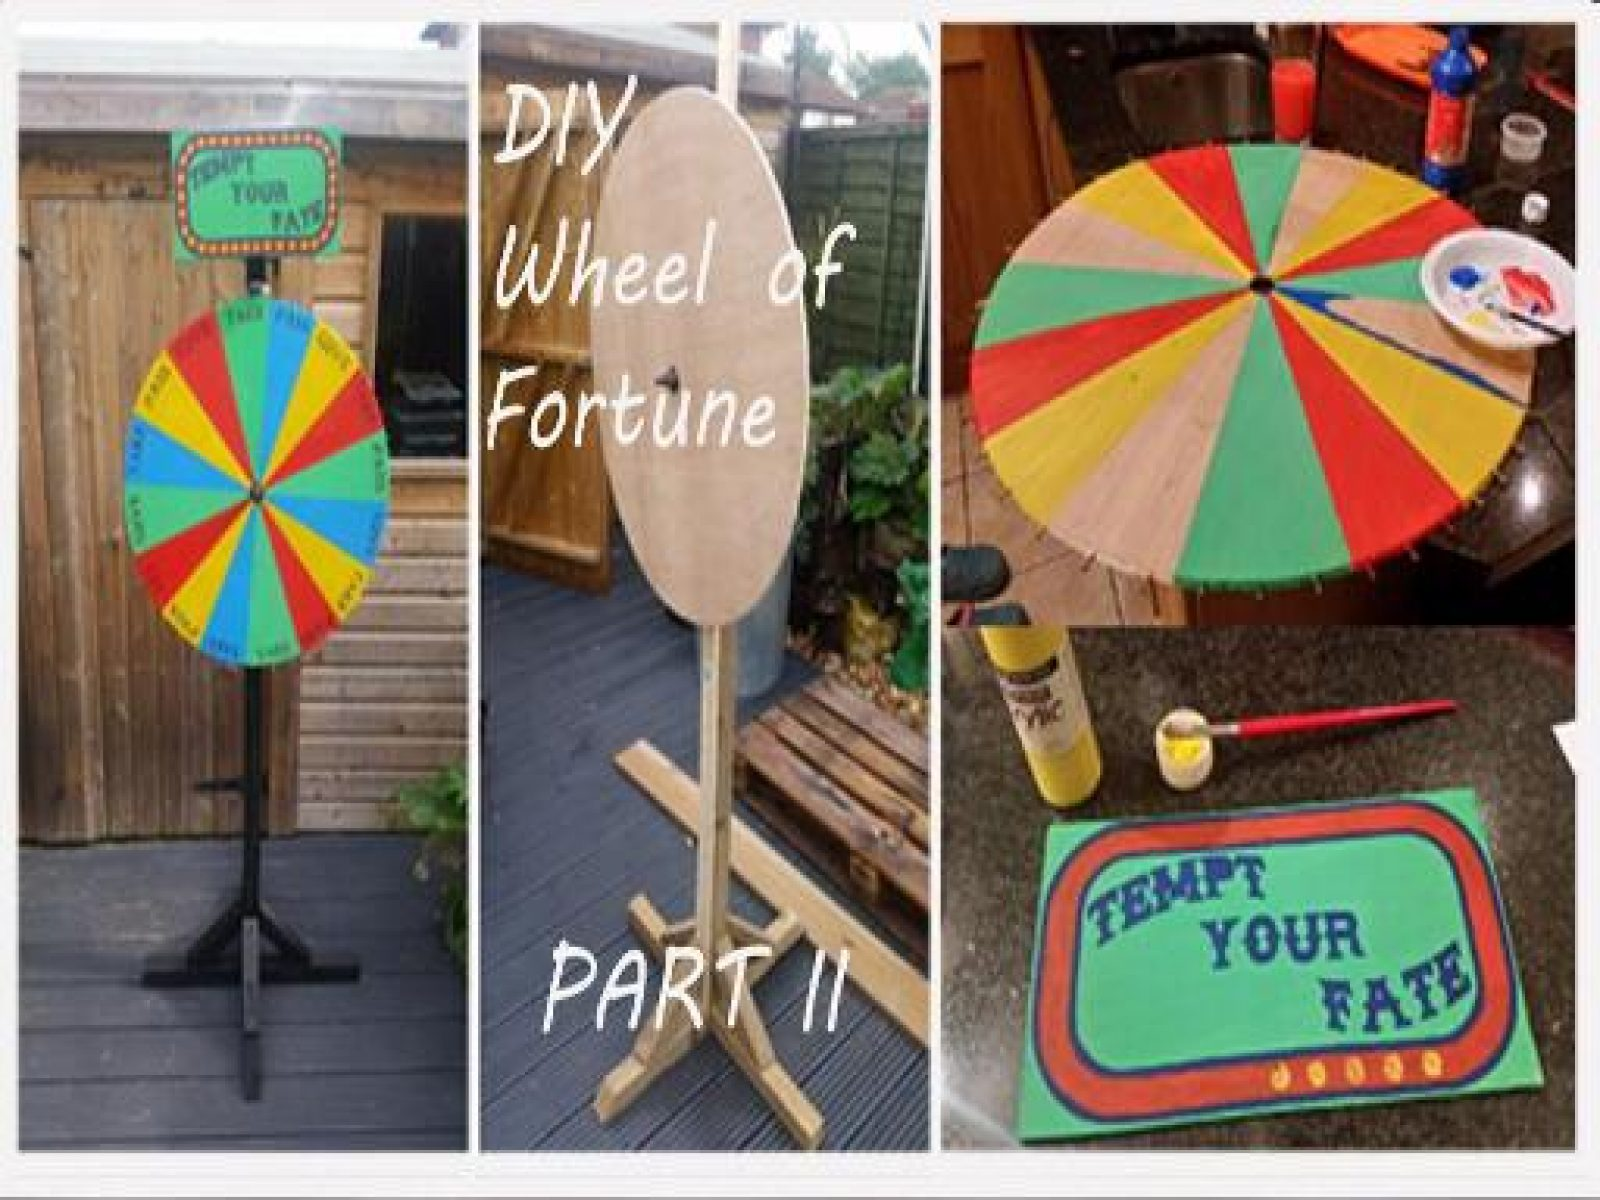 How to Make an Halloween Wheel of Fortune Drinking Game Prop PART II